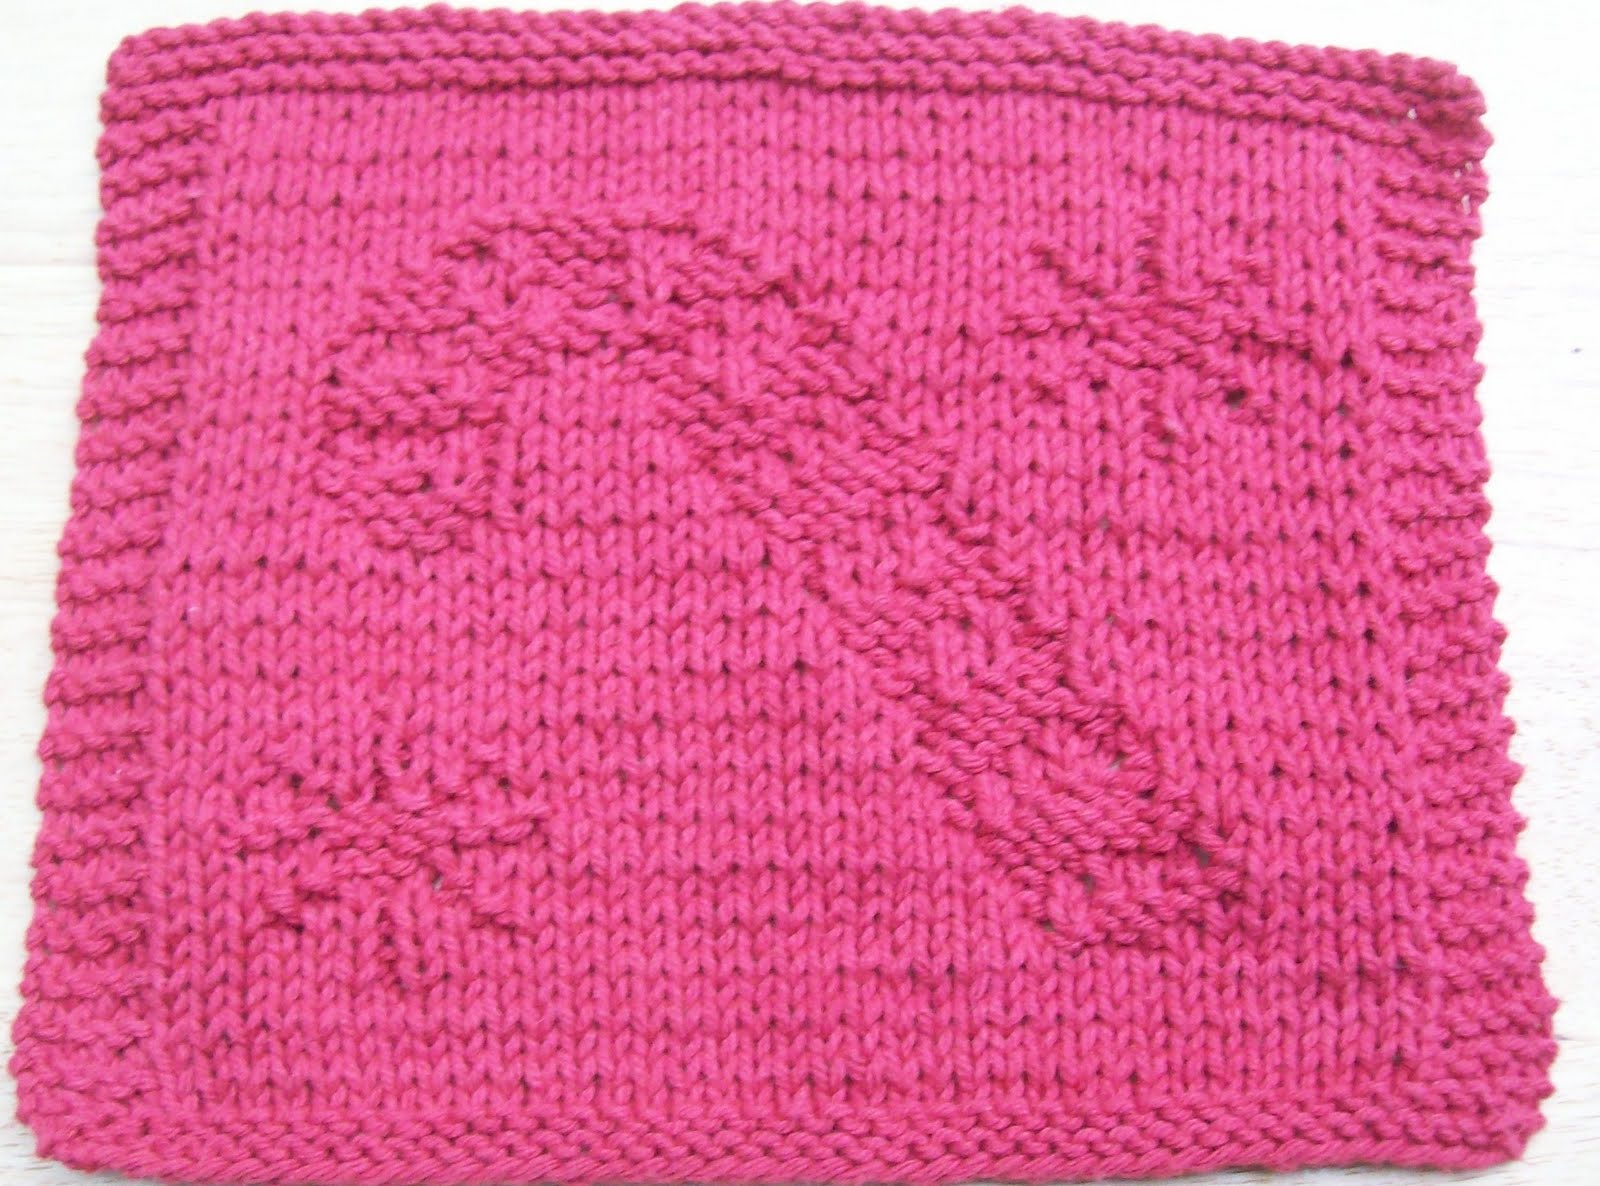 DigKnitty Designs: Another Candy Cane Knit Dishcloth Pattern